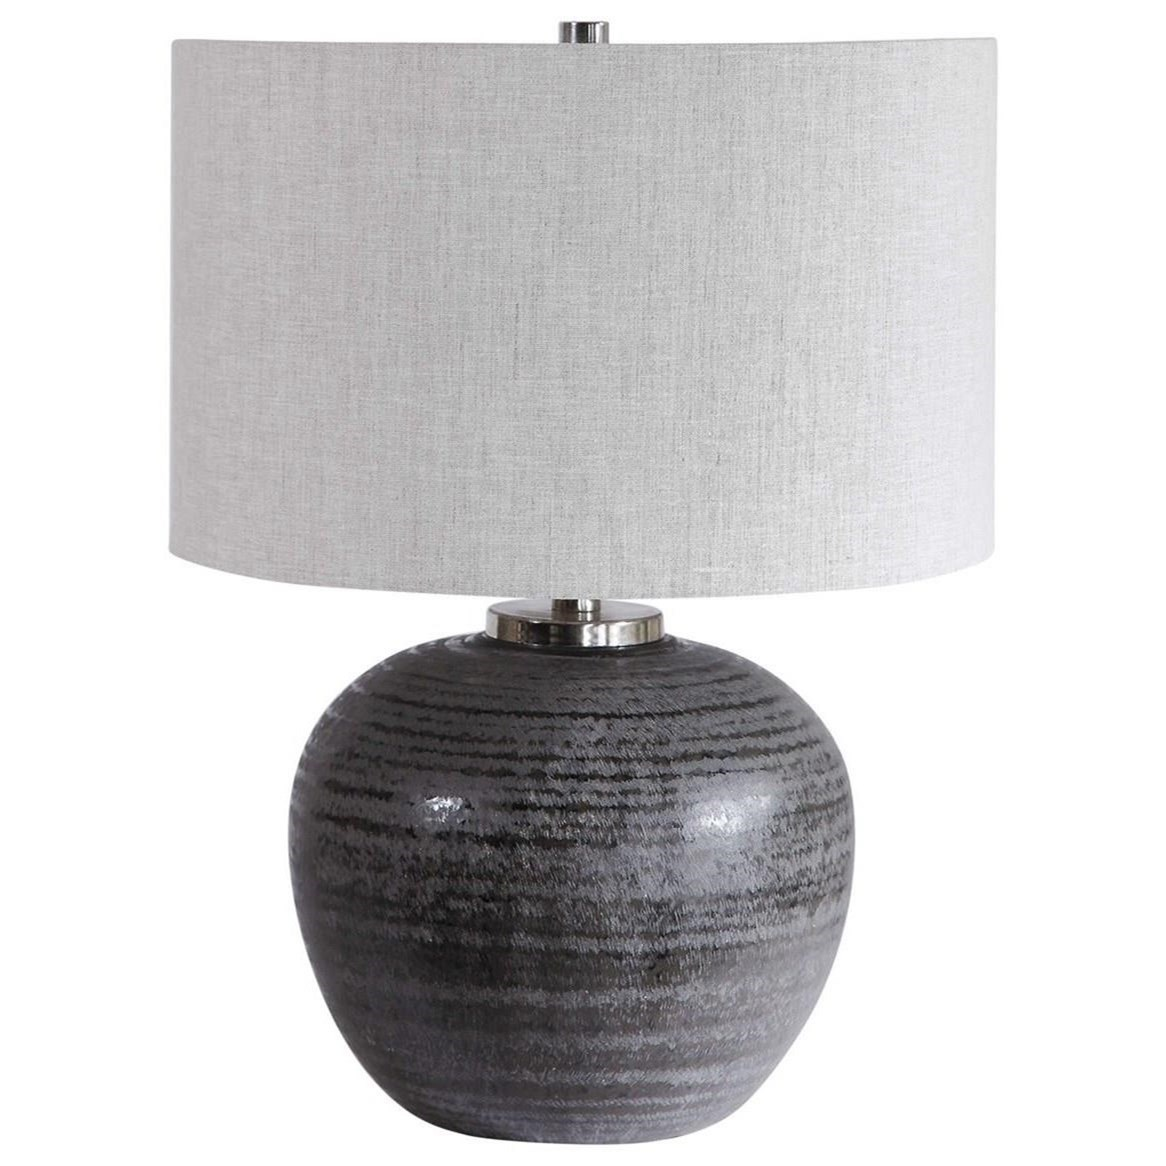 Mikkel Charcoal Table Lamp